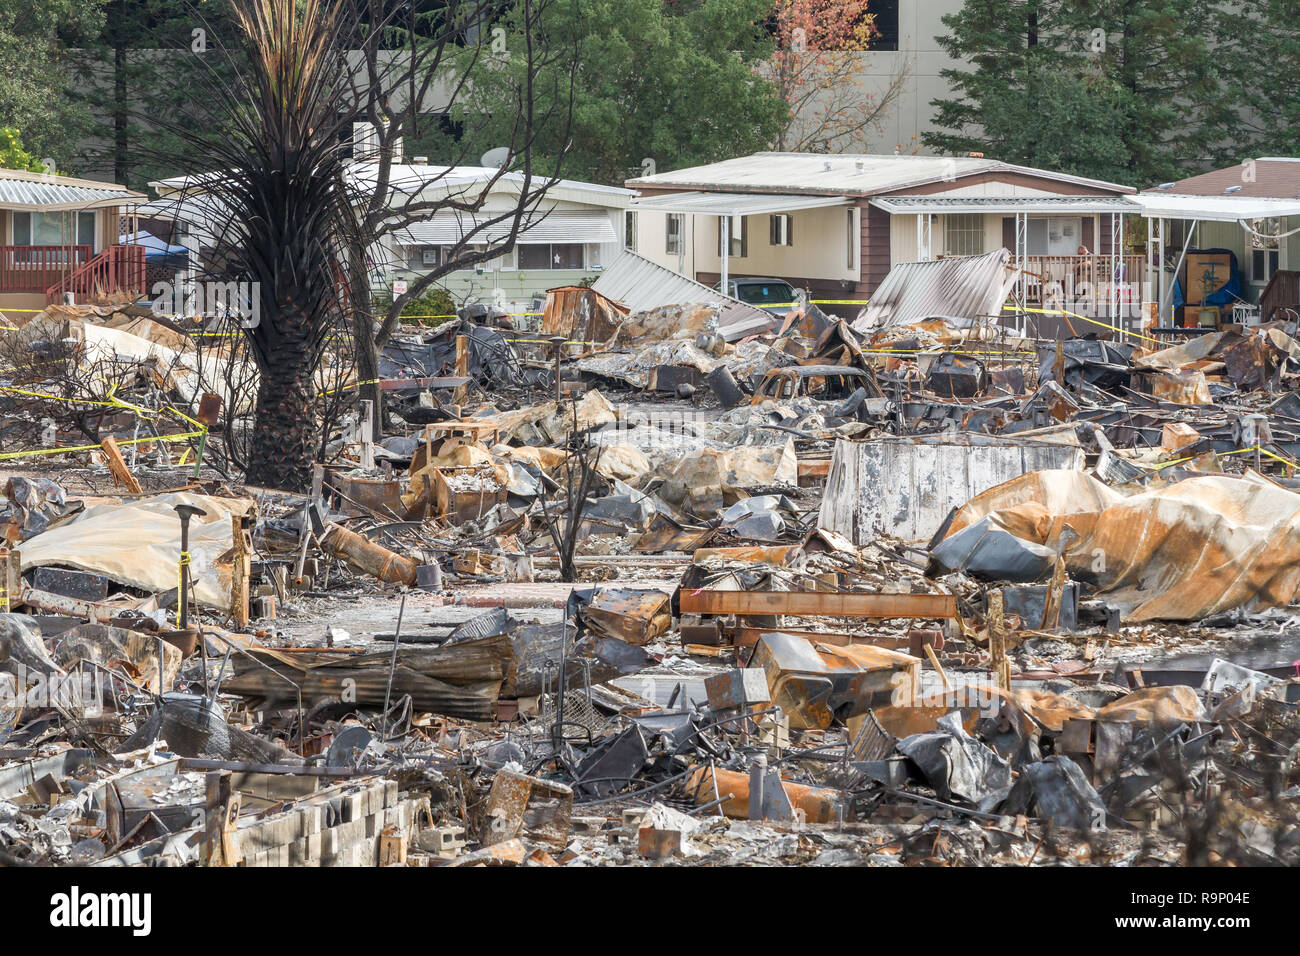 Sacrifice - These images were captured in neighborhoods near Santa Rosa, California, where wildfires in early October 2017. - Stock Image